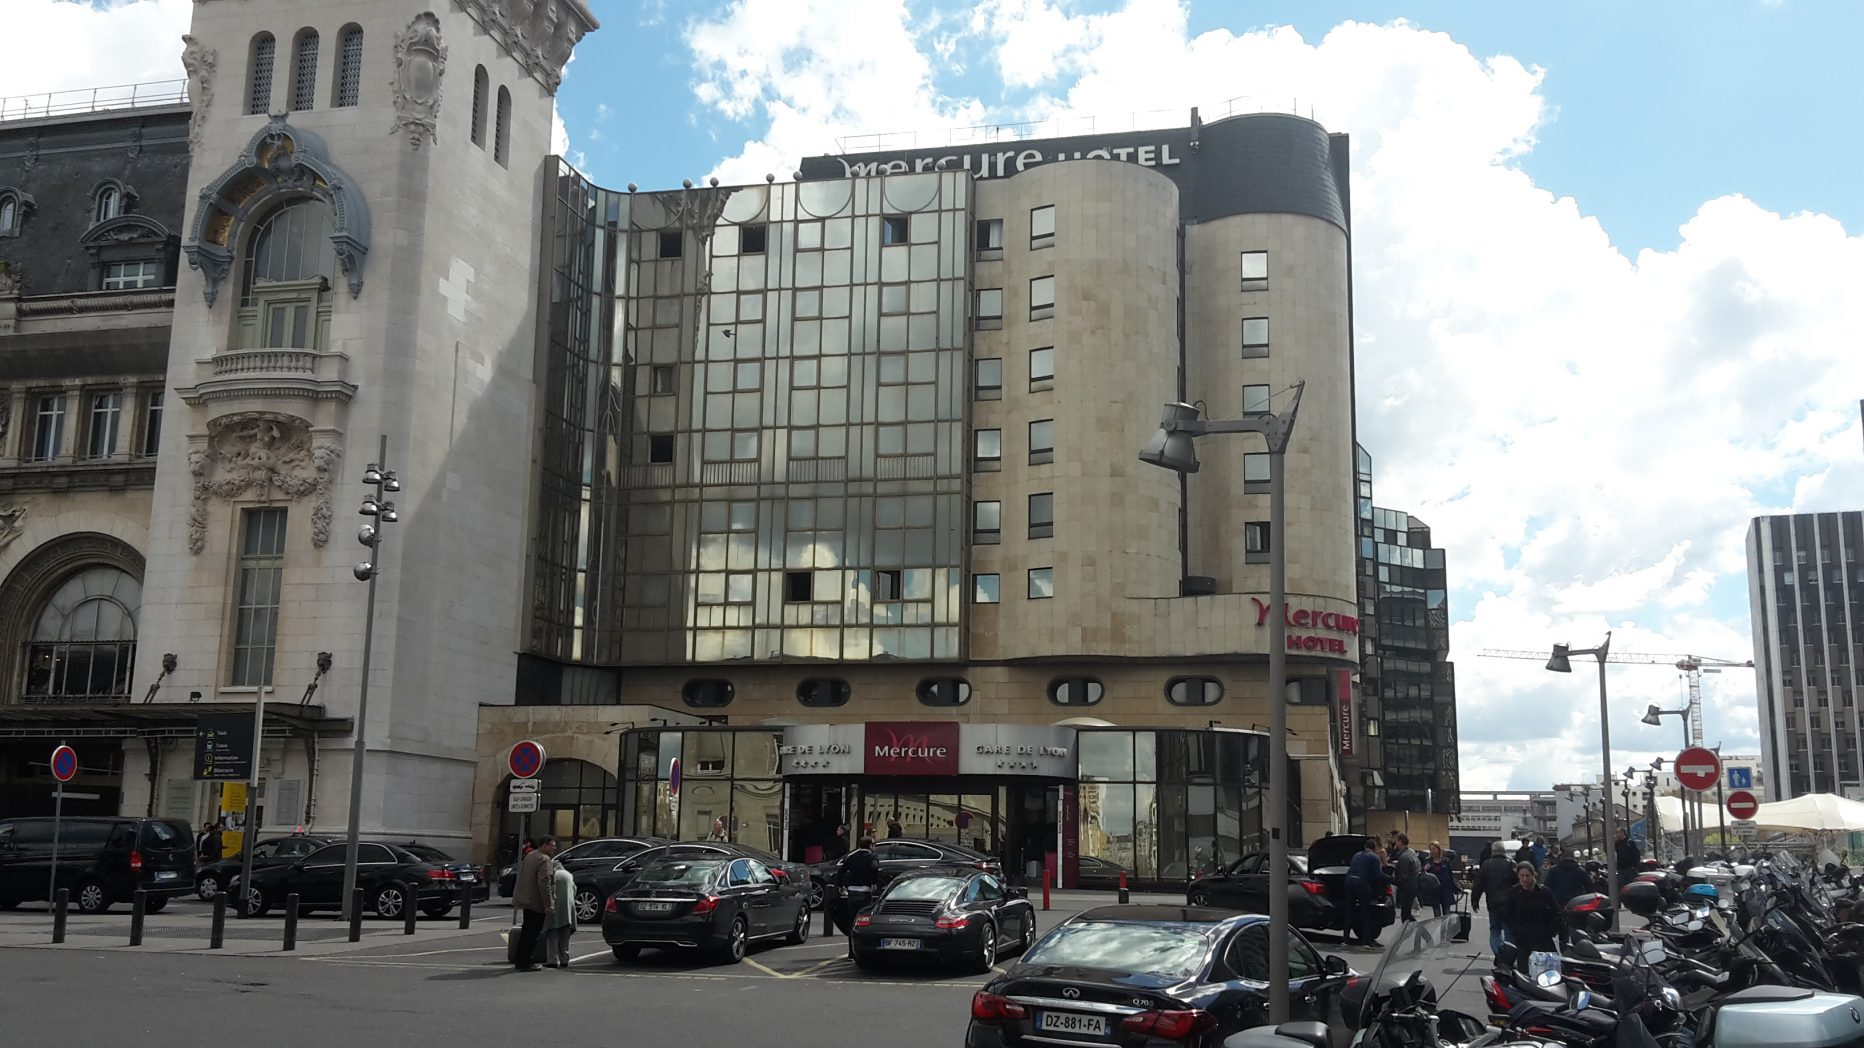 Hotel Mercure Paris Lyon thb mercure paris gare de lyon tgv hotel in paris